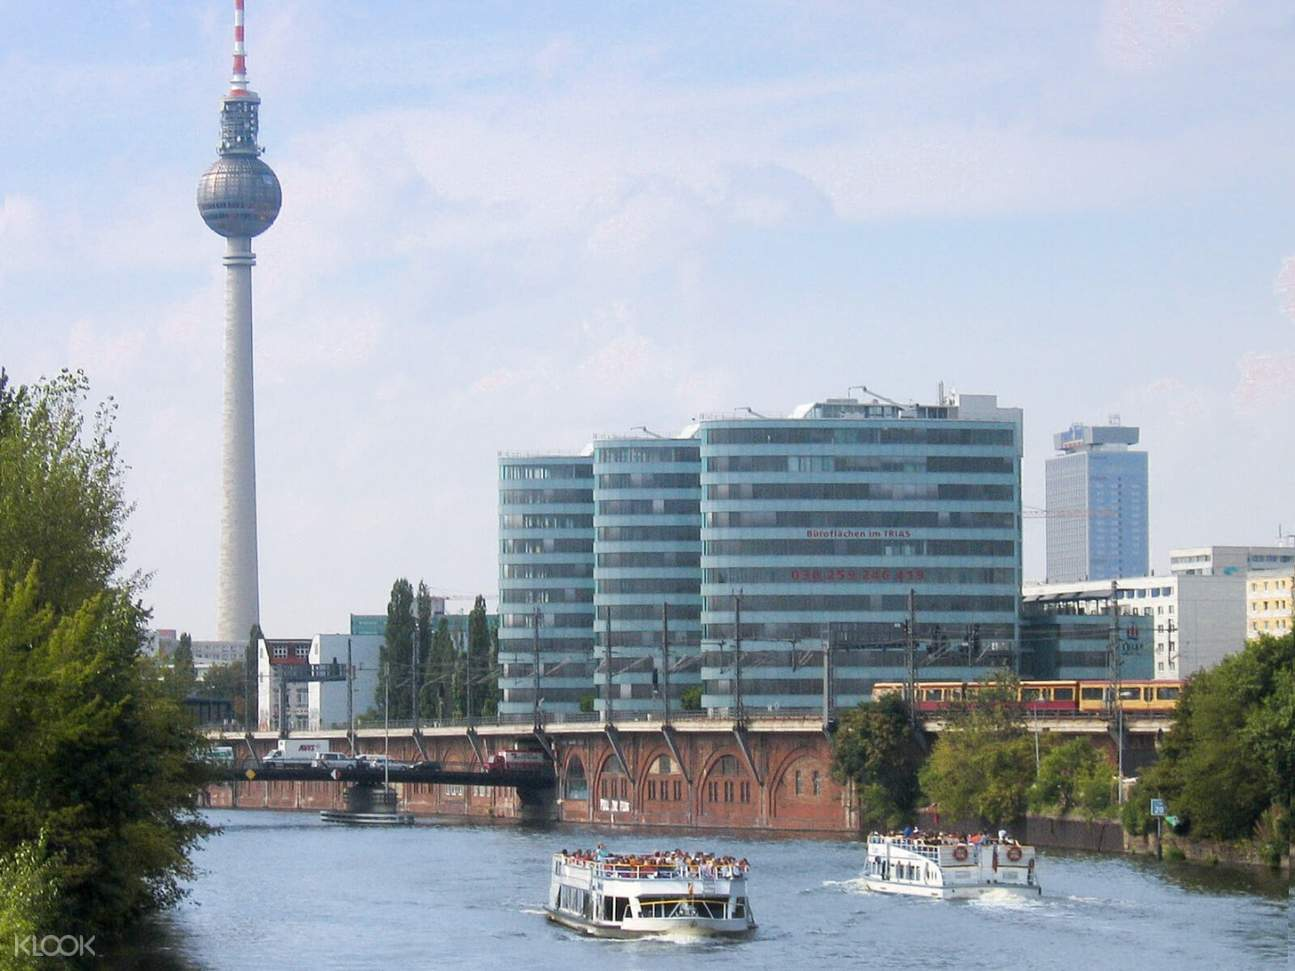 hop-on hop-off sightseeing boat passing by berlin tv tower